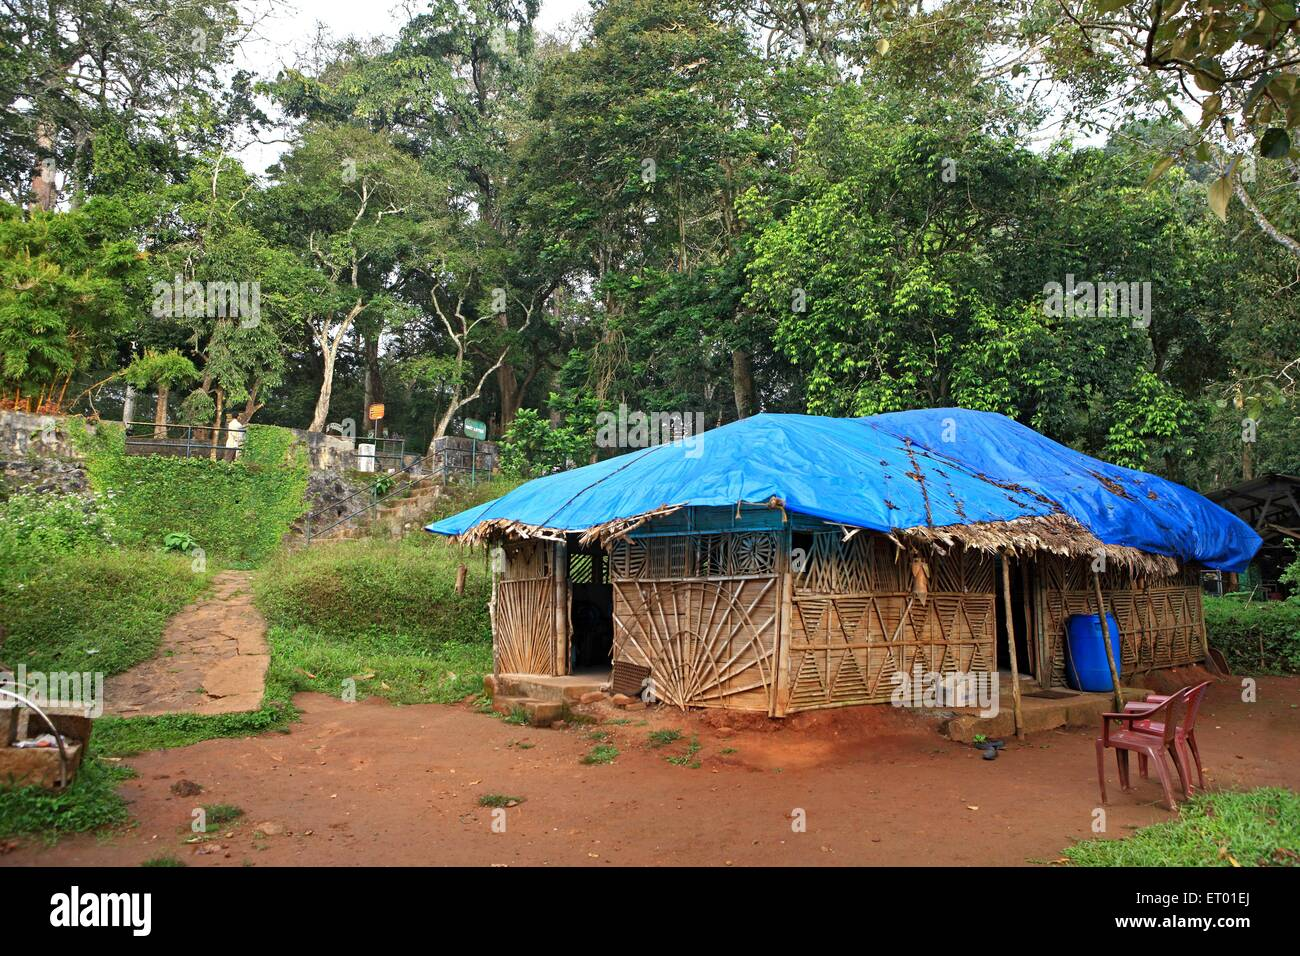 Bamboo hut with blue roof covering at Periyar tiger reserve ; Thekkadi ; Kerala ; India - Stock Image